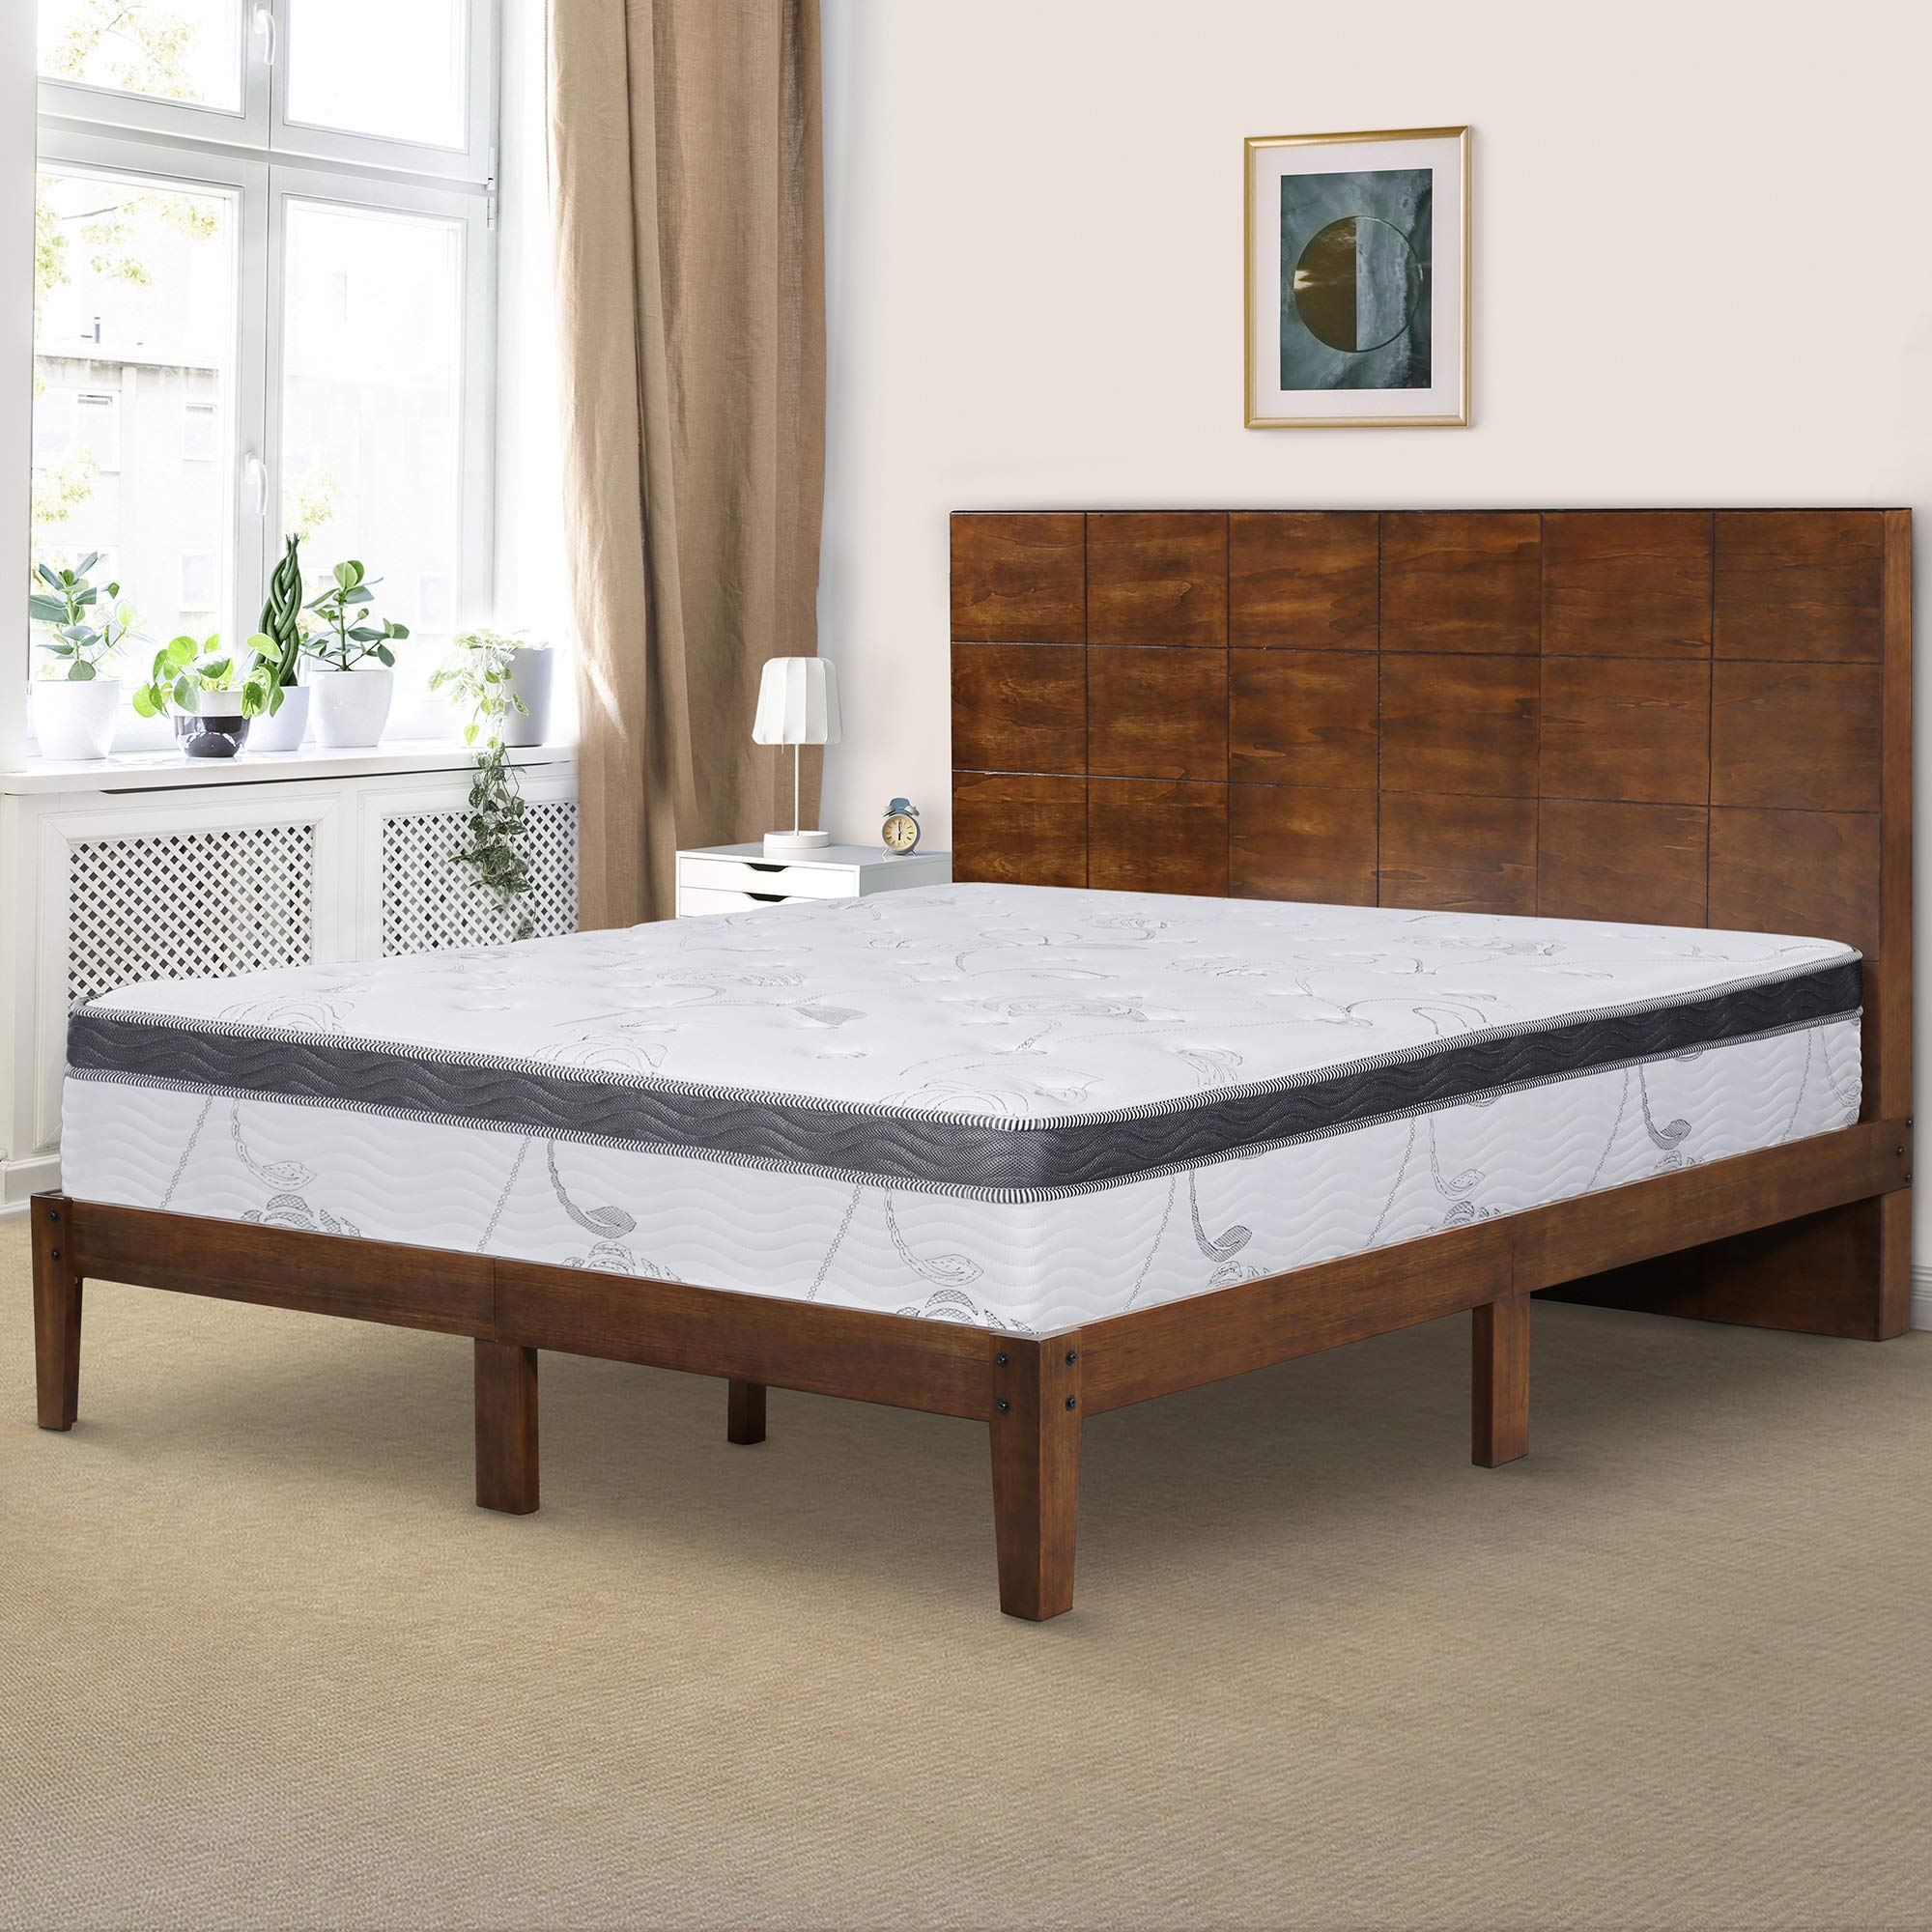 Ecos Living 48 Inch High Headboard Wood Platform Bed Frame with Slats/No Box Spring, King by Ecos Living